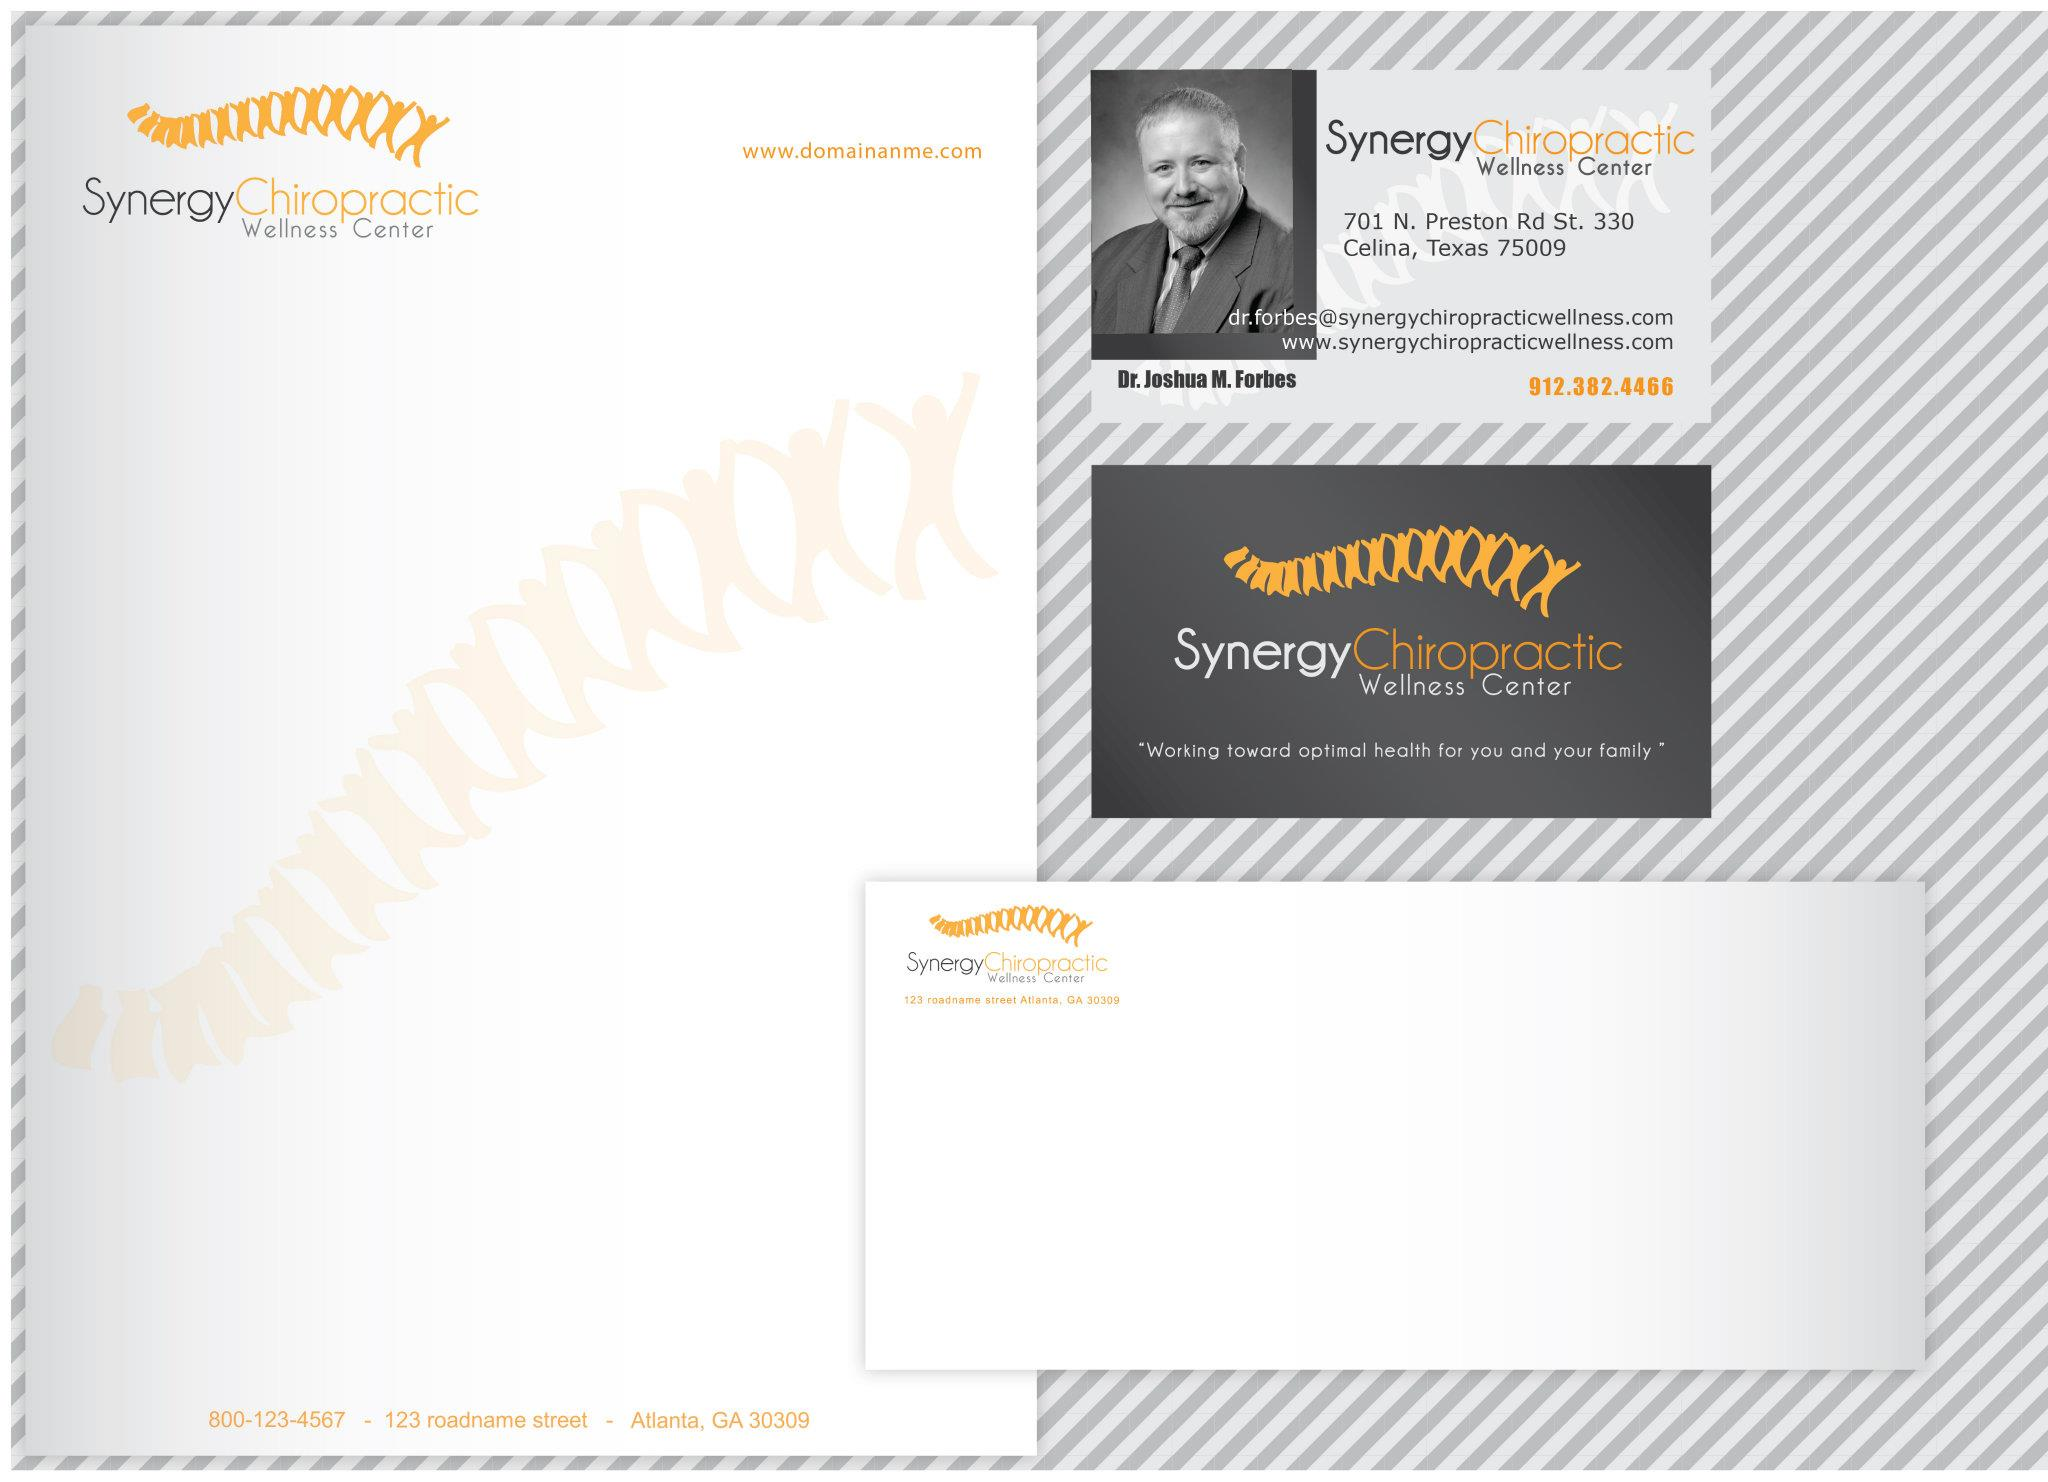 Synergy Chiropractic Wellness Center – Stationery and Business Card ...